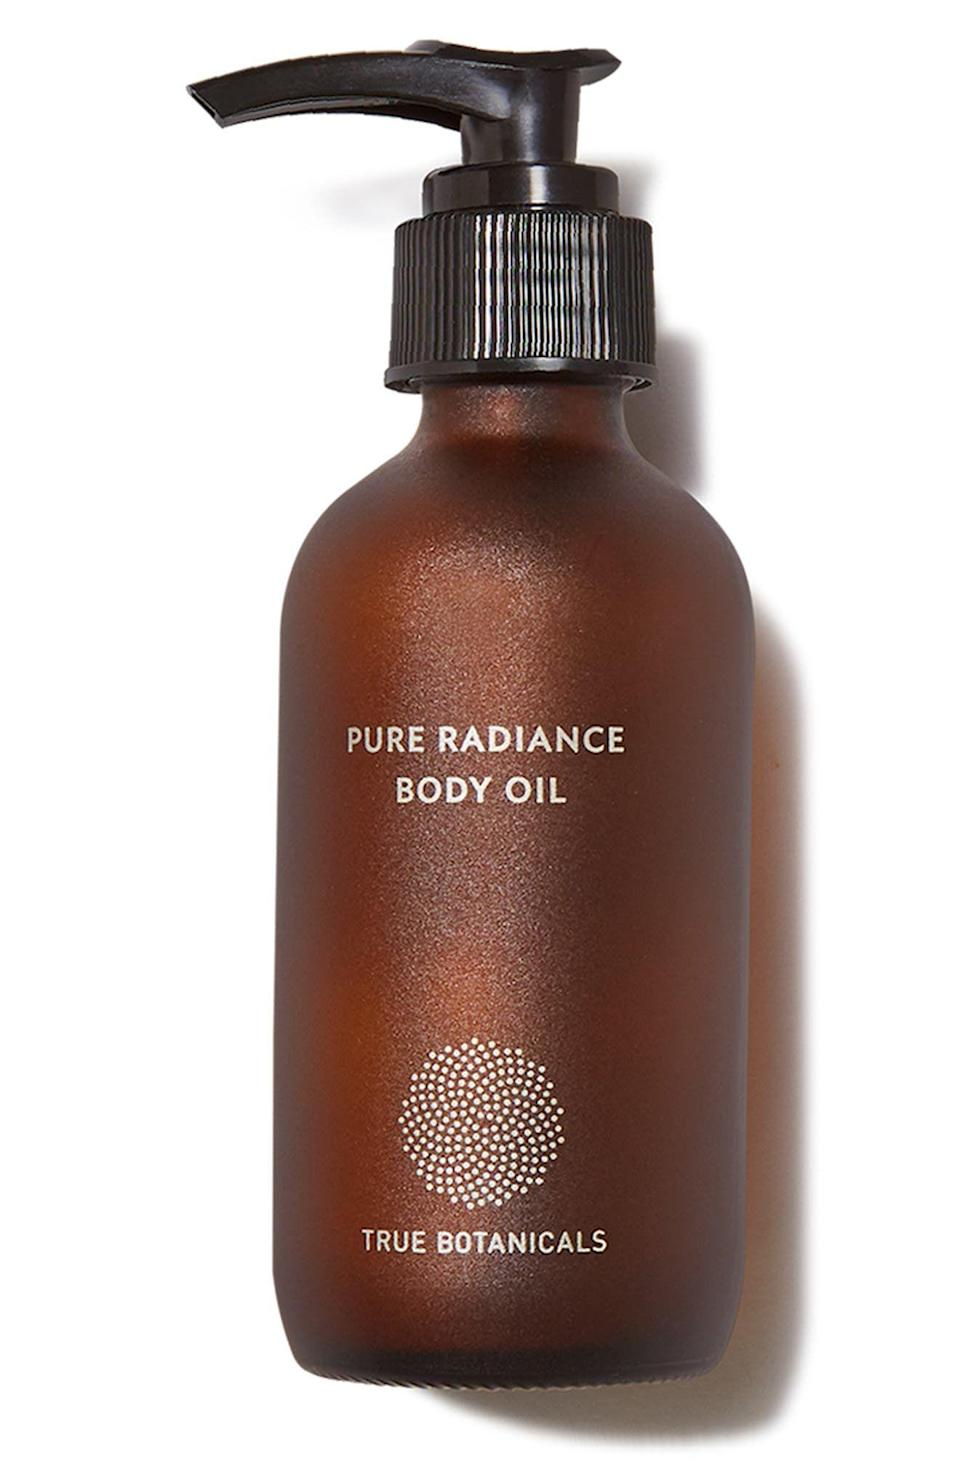 """<p><strong>TRUE BOTANICALS</strong></p><p>nordstrom.com</p><p><strong>$48.00</strong></p><p><a href=""""https://go.redirectingat.com?id=74968X1596630&url=https%3A%2F%2Fwww.nordstrom.com%2Fs%2Ftrue-botanicals-pure-radiance-body-oil%2F5850668&sref=https%3A%2F%2Fwww.womenshealthmag.com%2Fbeauty%2Fg37374736%2Fbest-body-oil%2F"""" rel=""""nofollow noopener"""" target=""""_blank"""" data-ylk=""""slk:Shop Now"""" class=""""link rapid-noclick-resp"""">Shop Now</a></p><p>Powered by green tea seed, hemp seed, and sandalwood oil—in addition to a slew of other antioxidants and essential fatty acids—this pregnancy-safe, hypoallergenic blend can be applied post-shower for an instant, all-over glow-up. A little goes a long way. Try it twice a week to start reaping its skin smoothing benefits, and up your applications if you just can't get enough of the subtle woodsy scent.</p>"""